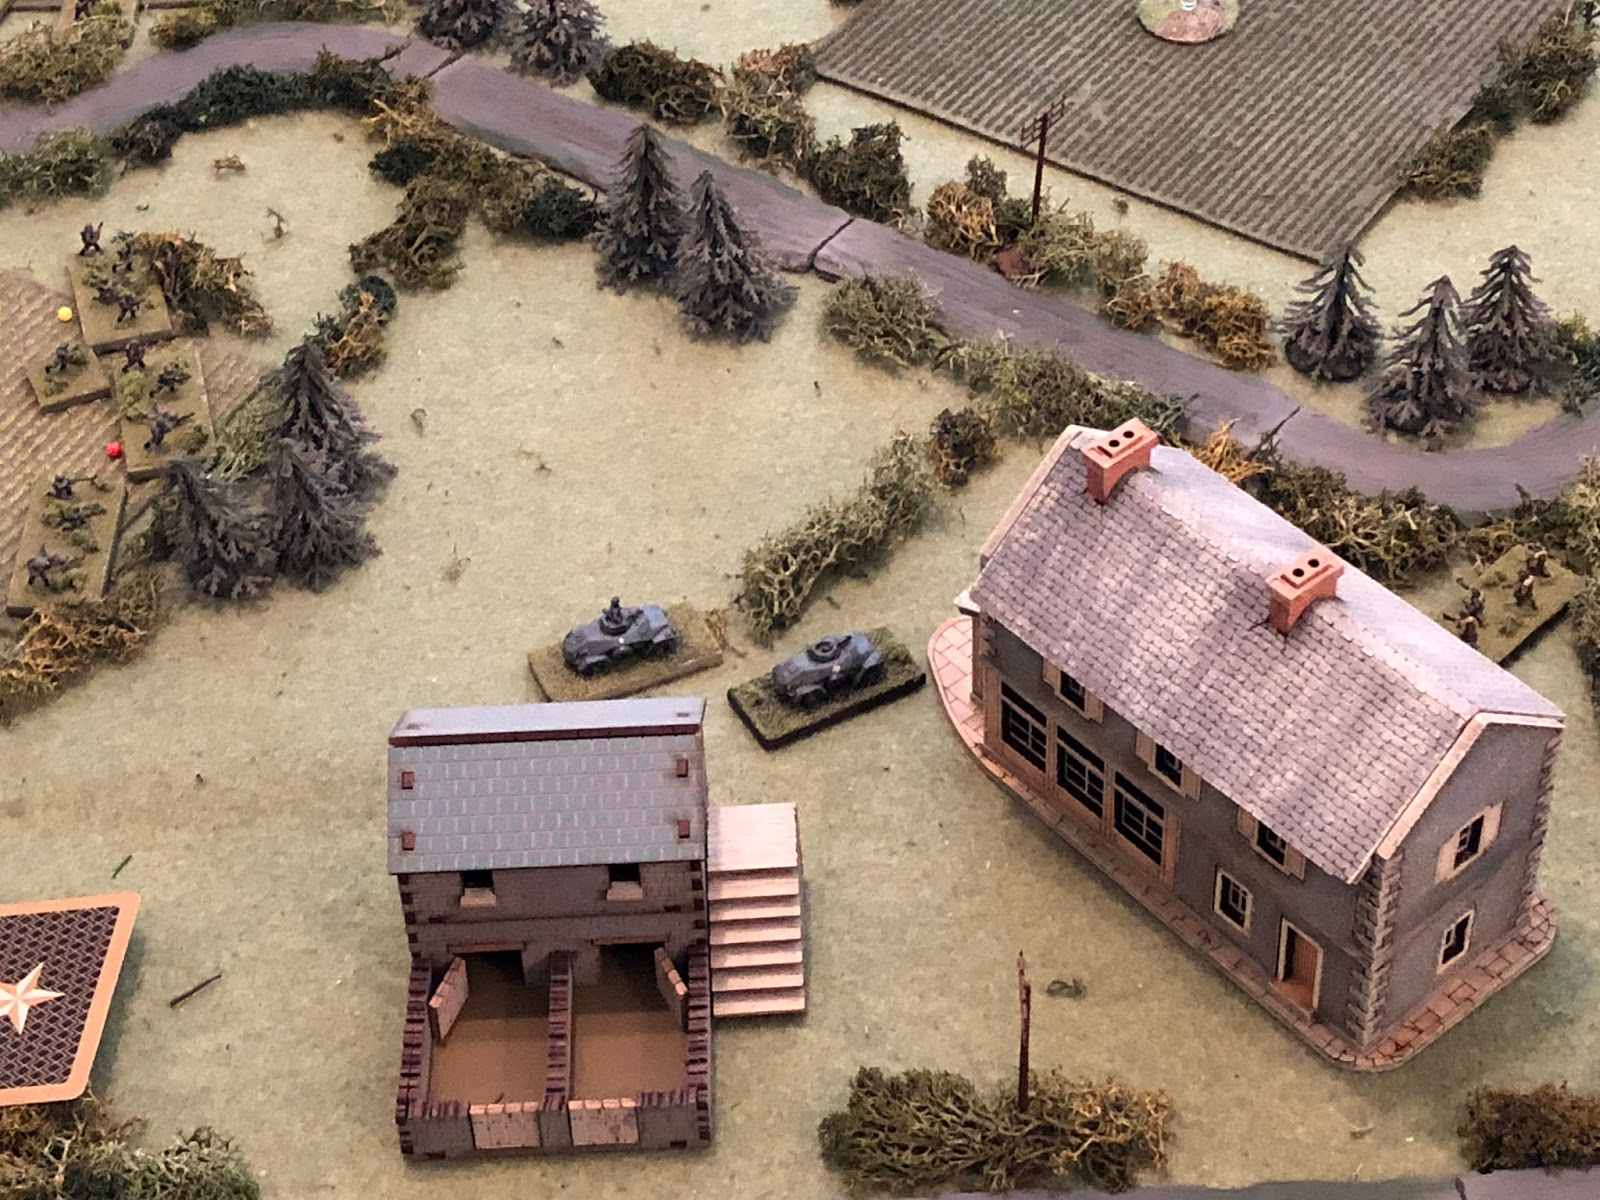 Lt Weidner (cente, with Cpl Edst's vehicle to his right) continues to watch the ville (off camera to top right) and, every now and again, pump 20mm rounds into it.  But suddenly he spots movement directly in front of him, just on the other side of the Granary (far right)!!!